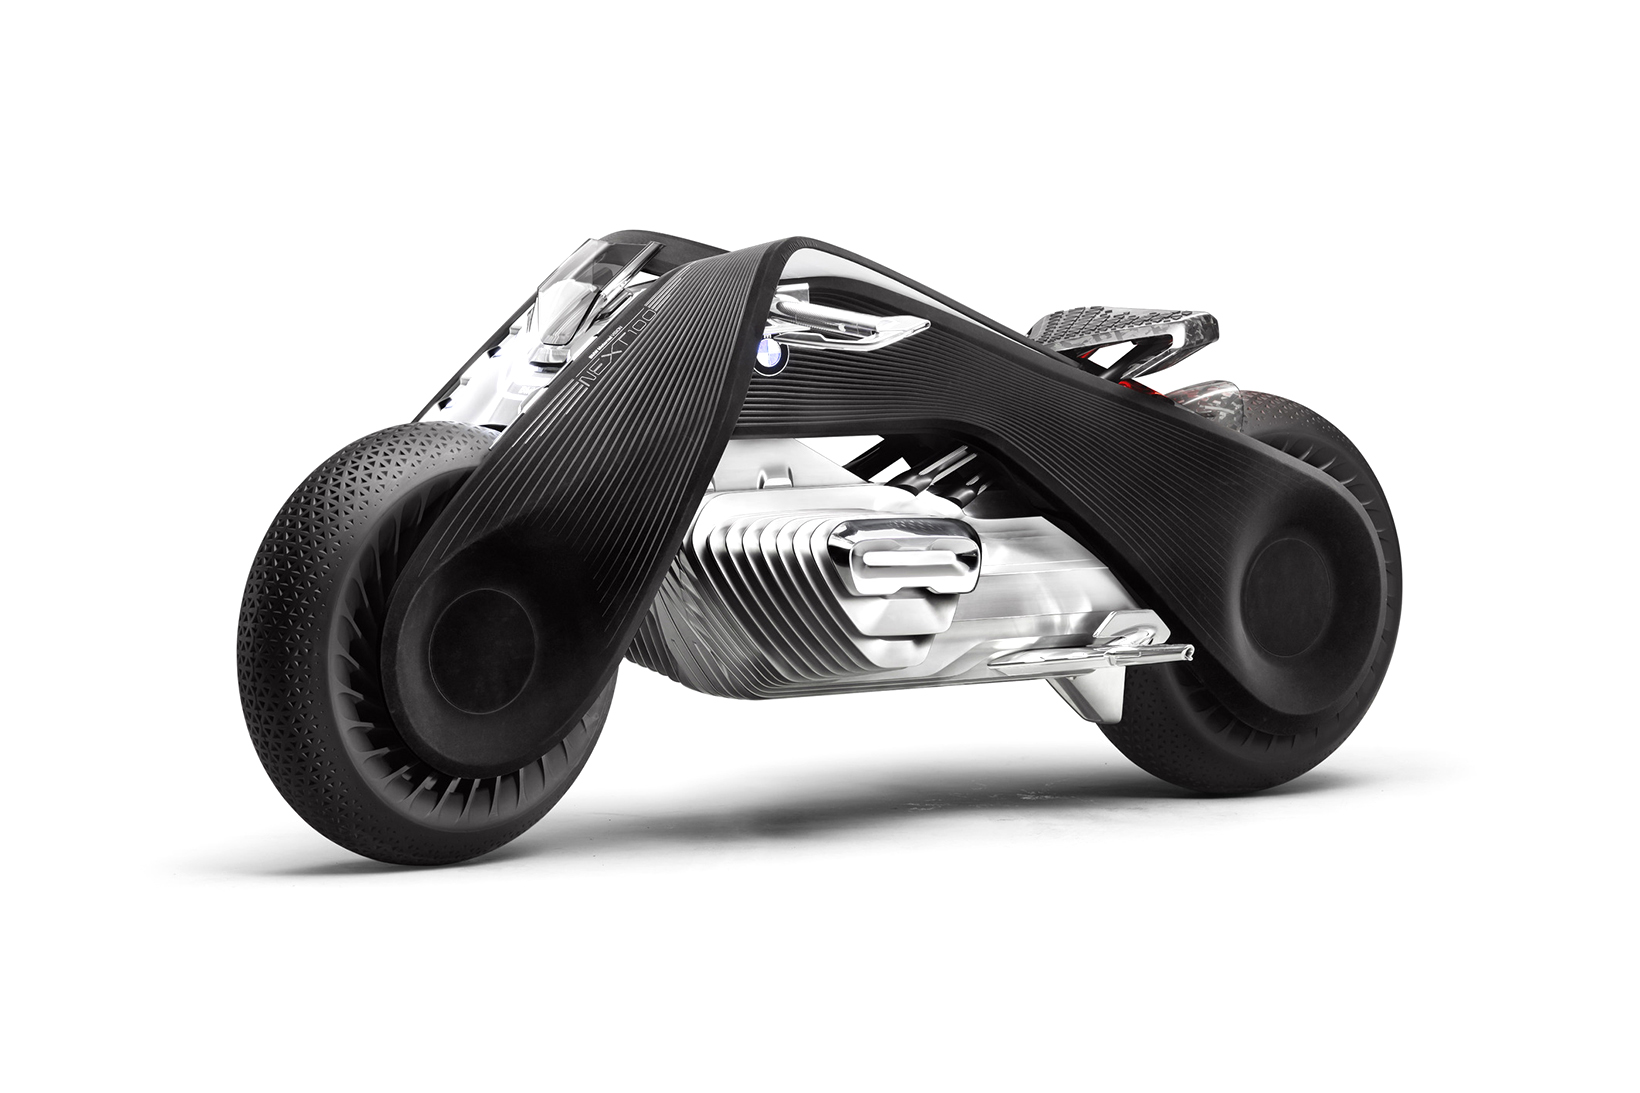 BMW's Motorrad Vision Next 100 Concept Is a Flexible, Self-Balancing Motorcyle